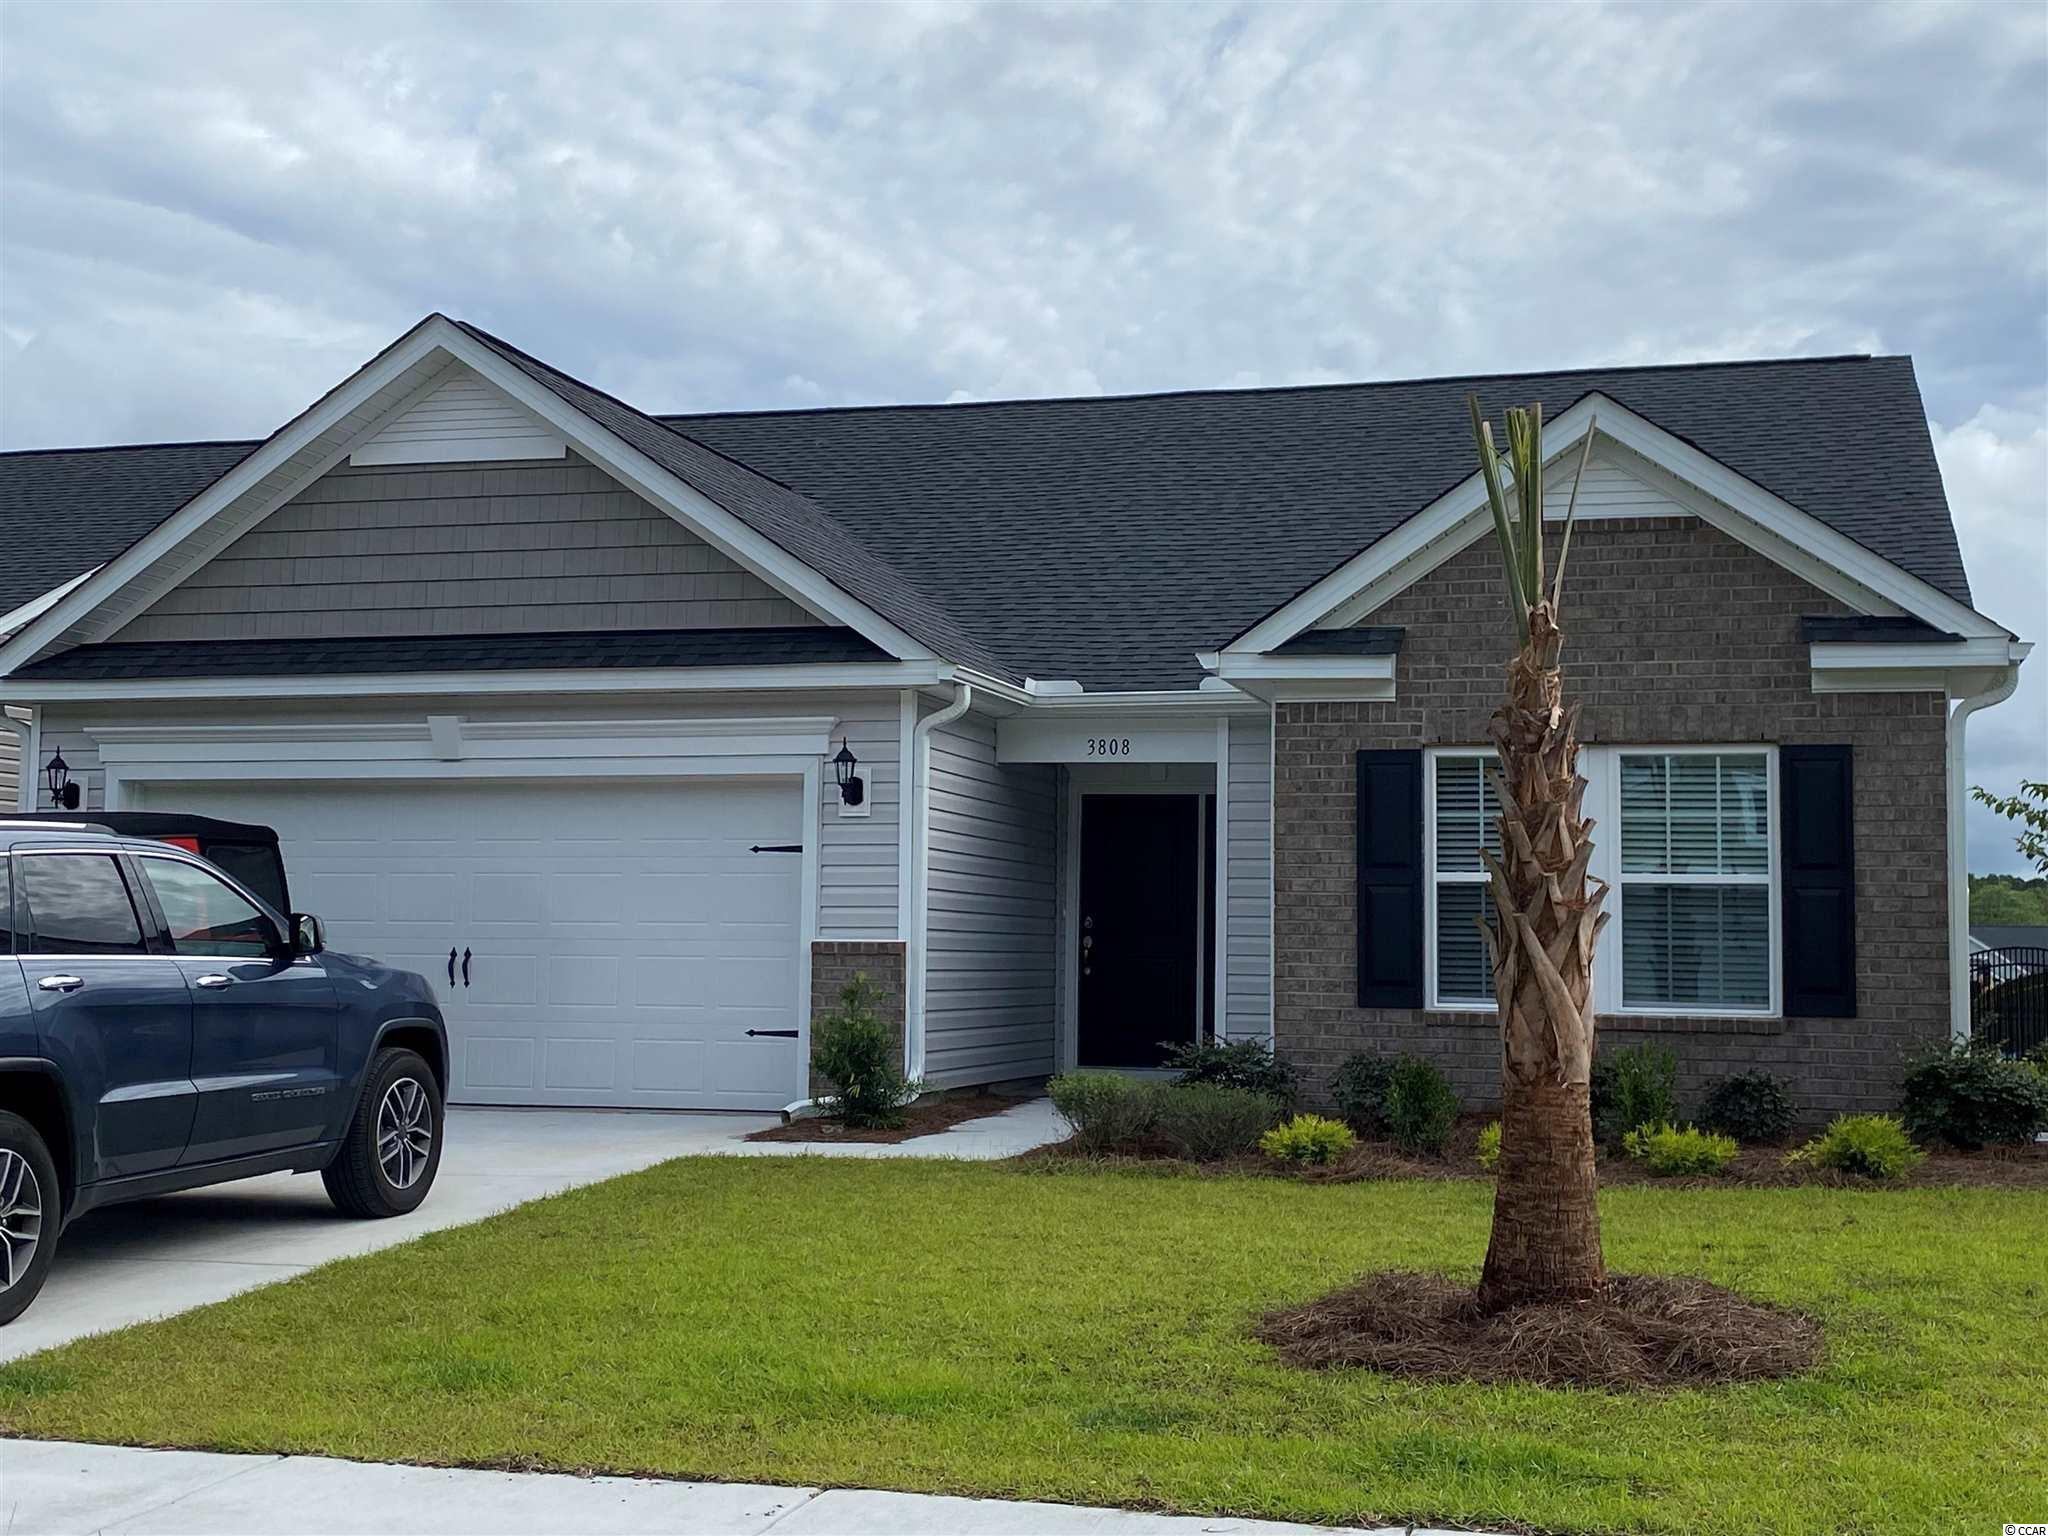 Park Pointe is a new Natural Gas Community.  Located across from the North Myrtle Beach Park and Sports Complex and just off the Robert Edge Parkway, Park Pointe is convenient to everything the north end of the Grand Strand has to offer. Surrounded by nature preserve, Park Pointe offers a tranquil, inviting backdrop for your new home.  Park Pointe allows easy access to major highways like Hwy 31, Hwy 90, Hwy 17 and N. Myrtle Beach's Main Street. You can live minutes to beautiful beaches, fabulous shopping, championship golf, great restaurants, amazing night-life, first-class medical facilities and other local attractions...in other words, it's everything you're looking for in a Coastal Carolina location.  With 13 open and uniquely designed plans ranging from 1360 heated sq. ft. to over 3000 heated sq. ft., these well-appointed homes offer a tremendous selection of options.  Next door you'll find the North Myrtle Beach Park and Sports Complex.  The park is equipped with a wide selection of amenities that will add value, fun, and comfort such as concessions, picnic shelters, playgrounds, an amphitheater, walking/bike trails, dog parks, a 25 acre lake for water activities, a 10 acre meadow and much more.  Enjoy everything that North Myrtle Beach and Little River has to offer when you make Park Pointe your place to make memories happen.